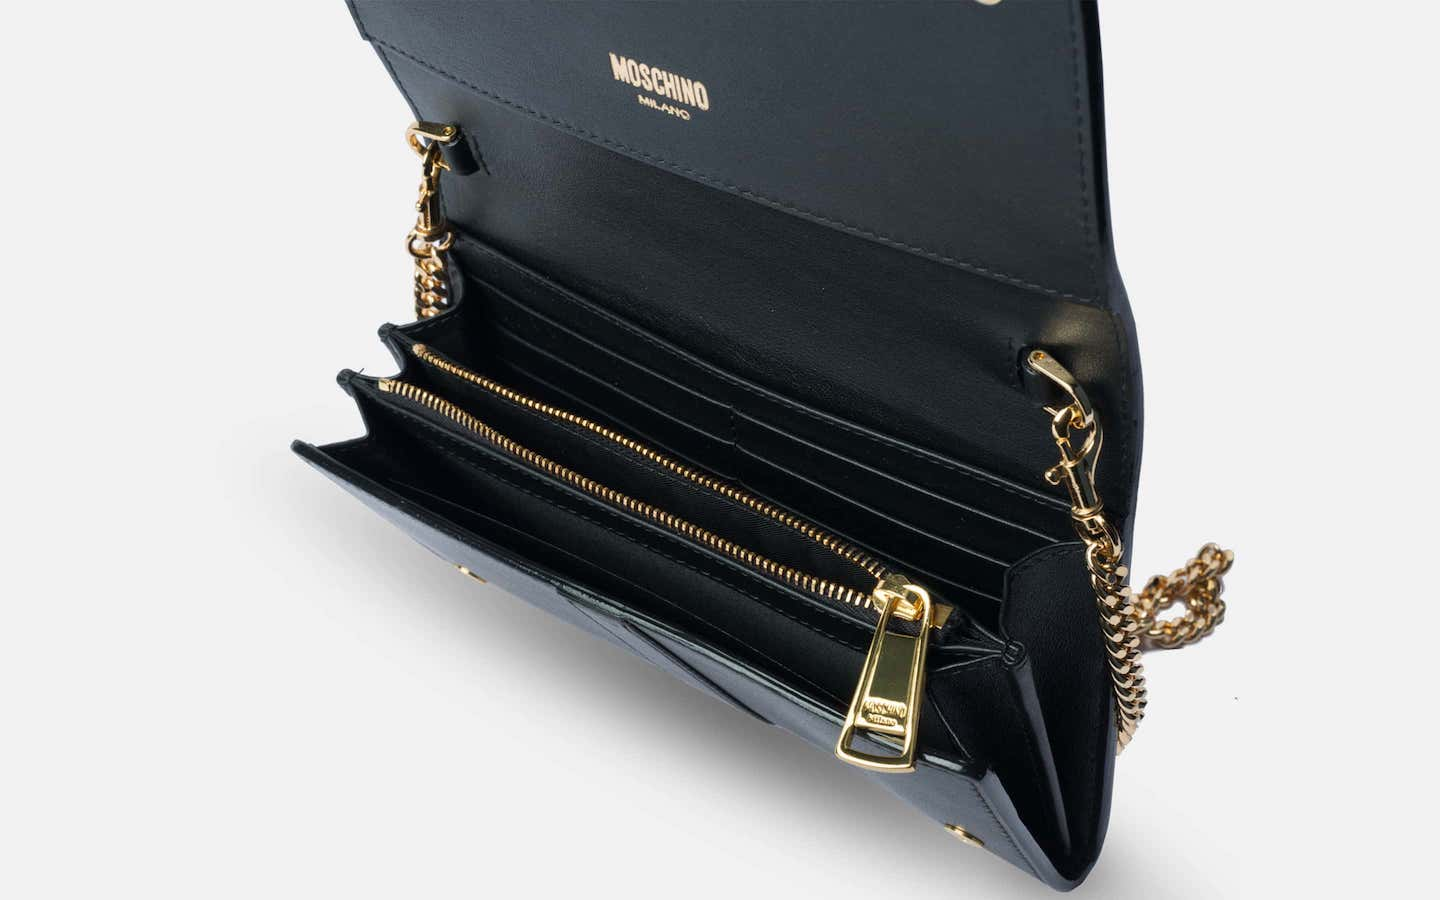 Moschino_Letters__Shoulder_Bag_Black_Clutch__Perspective-min